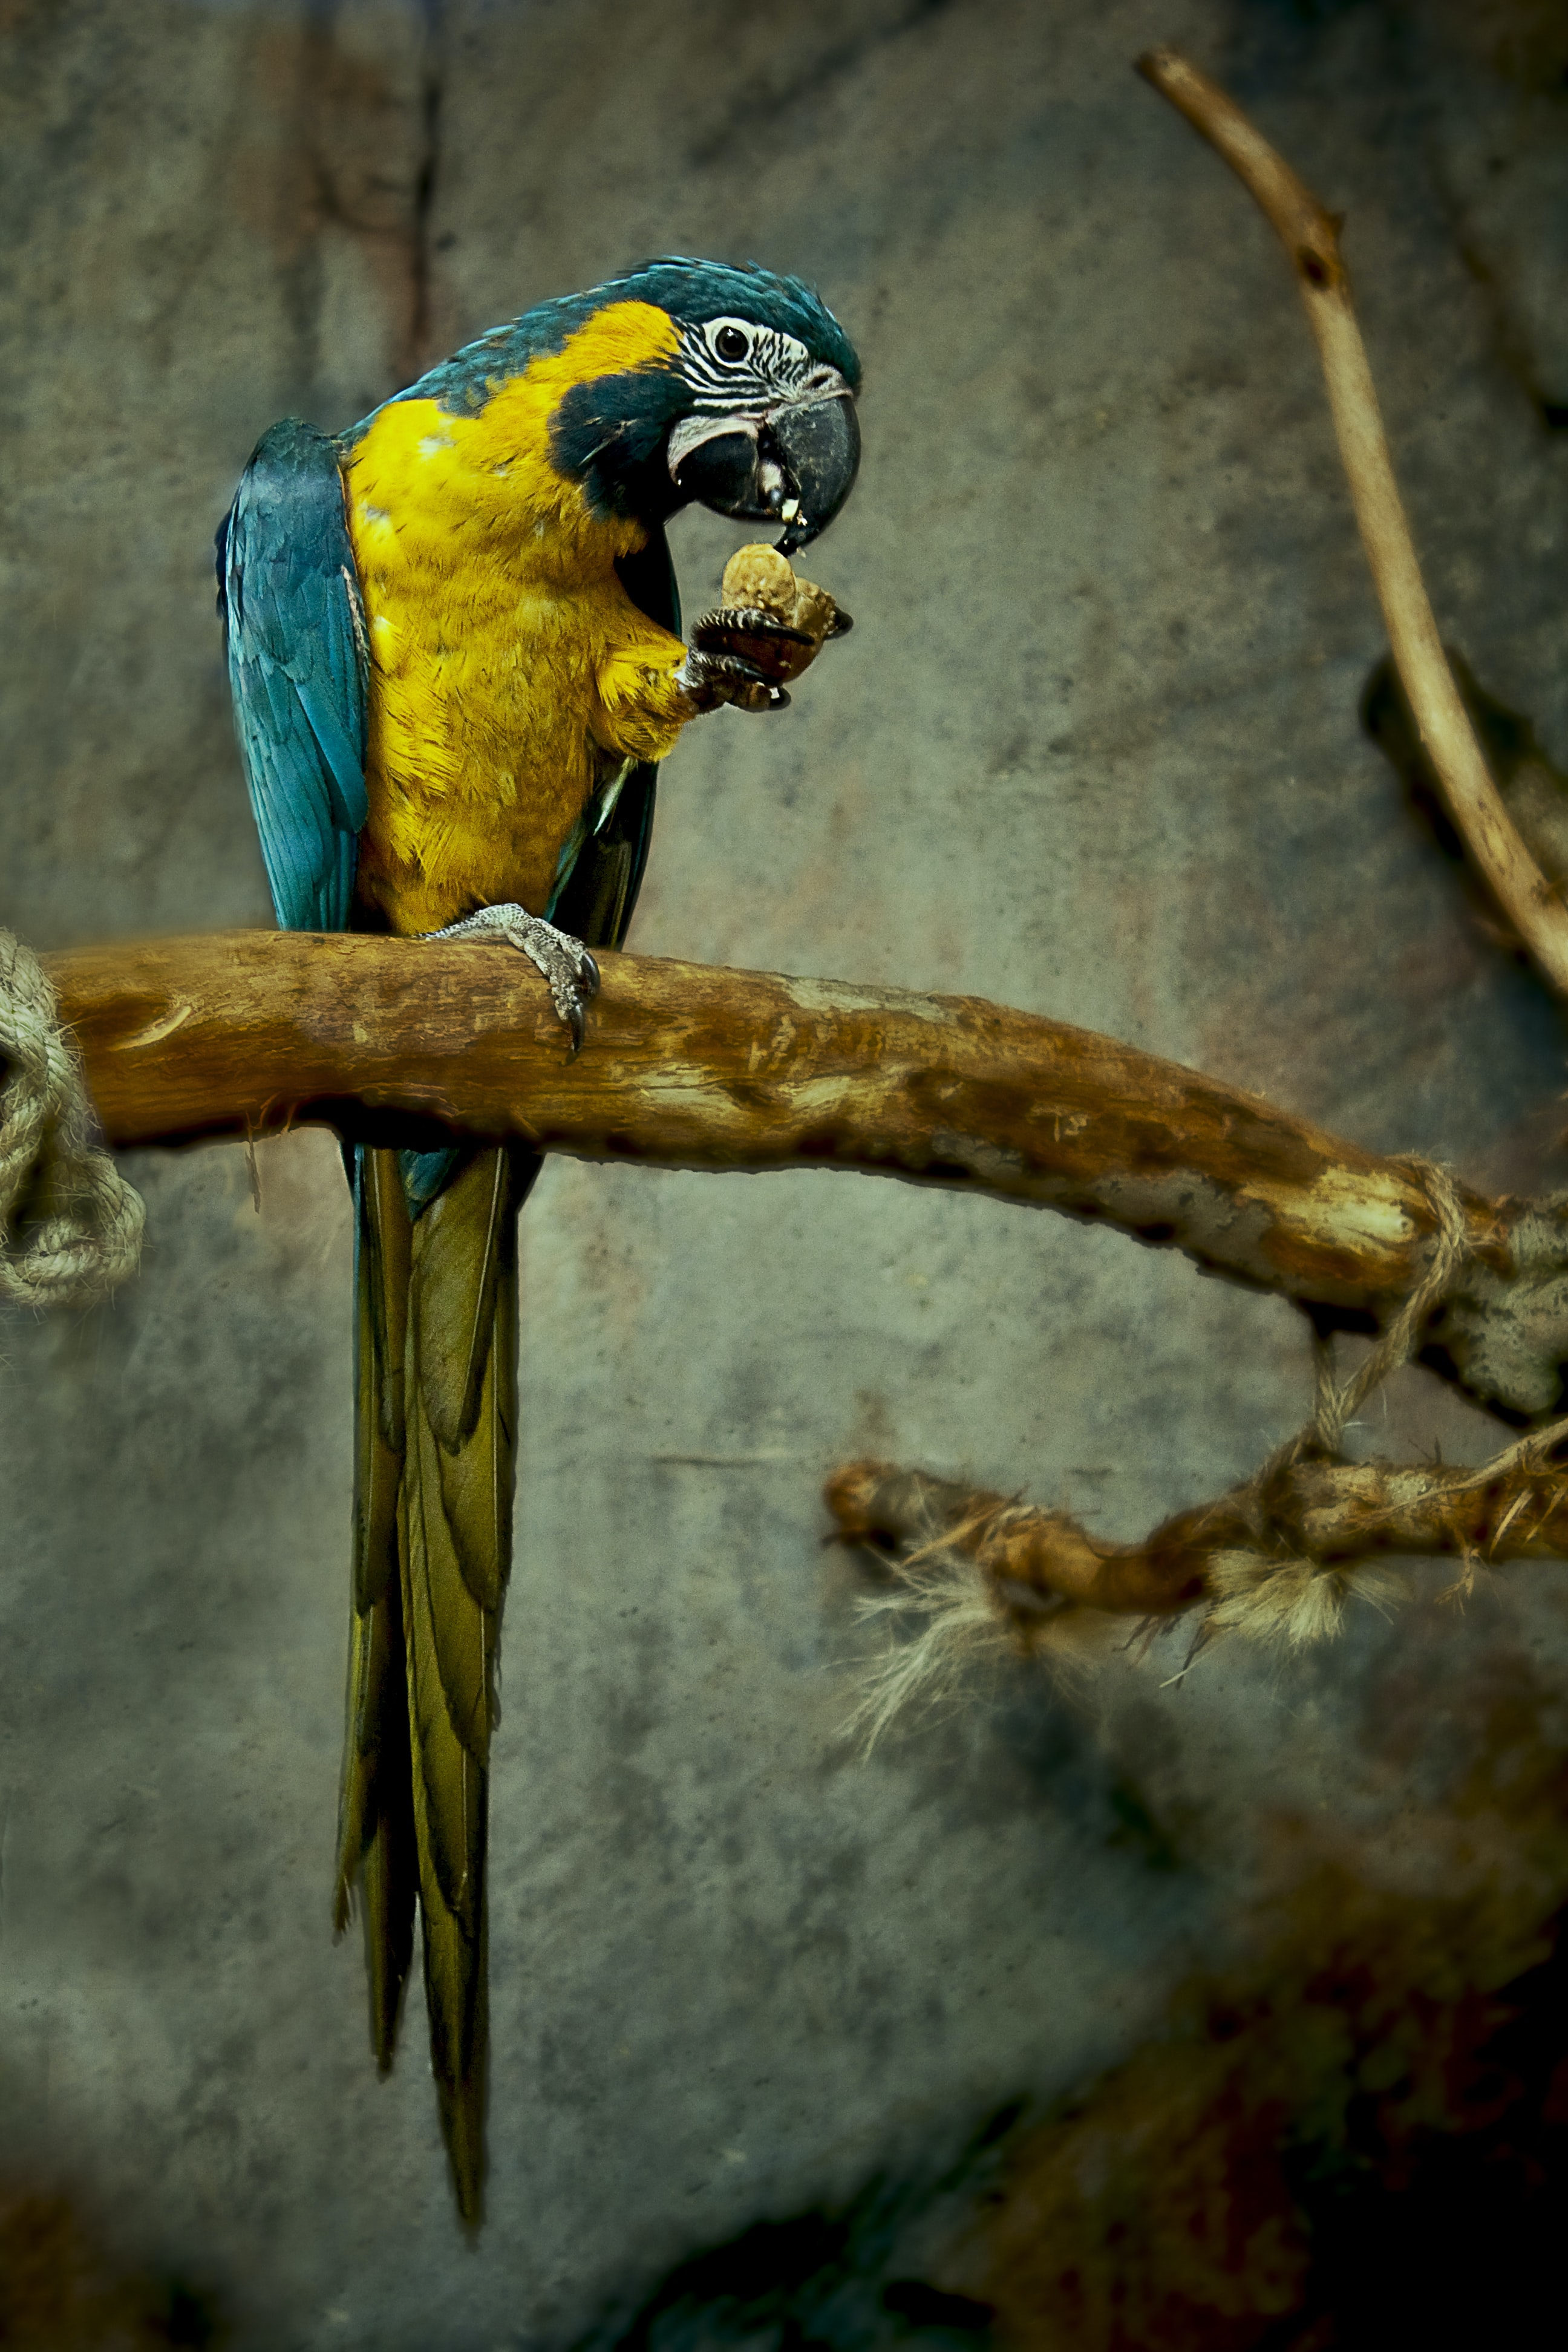 yellow and blue macaw perched on tree branch